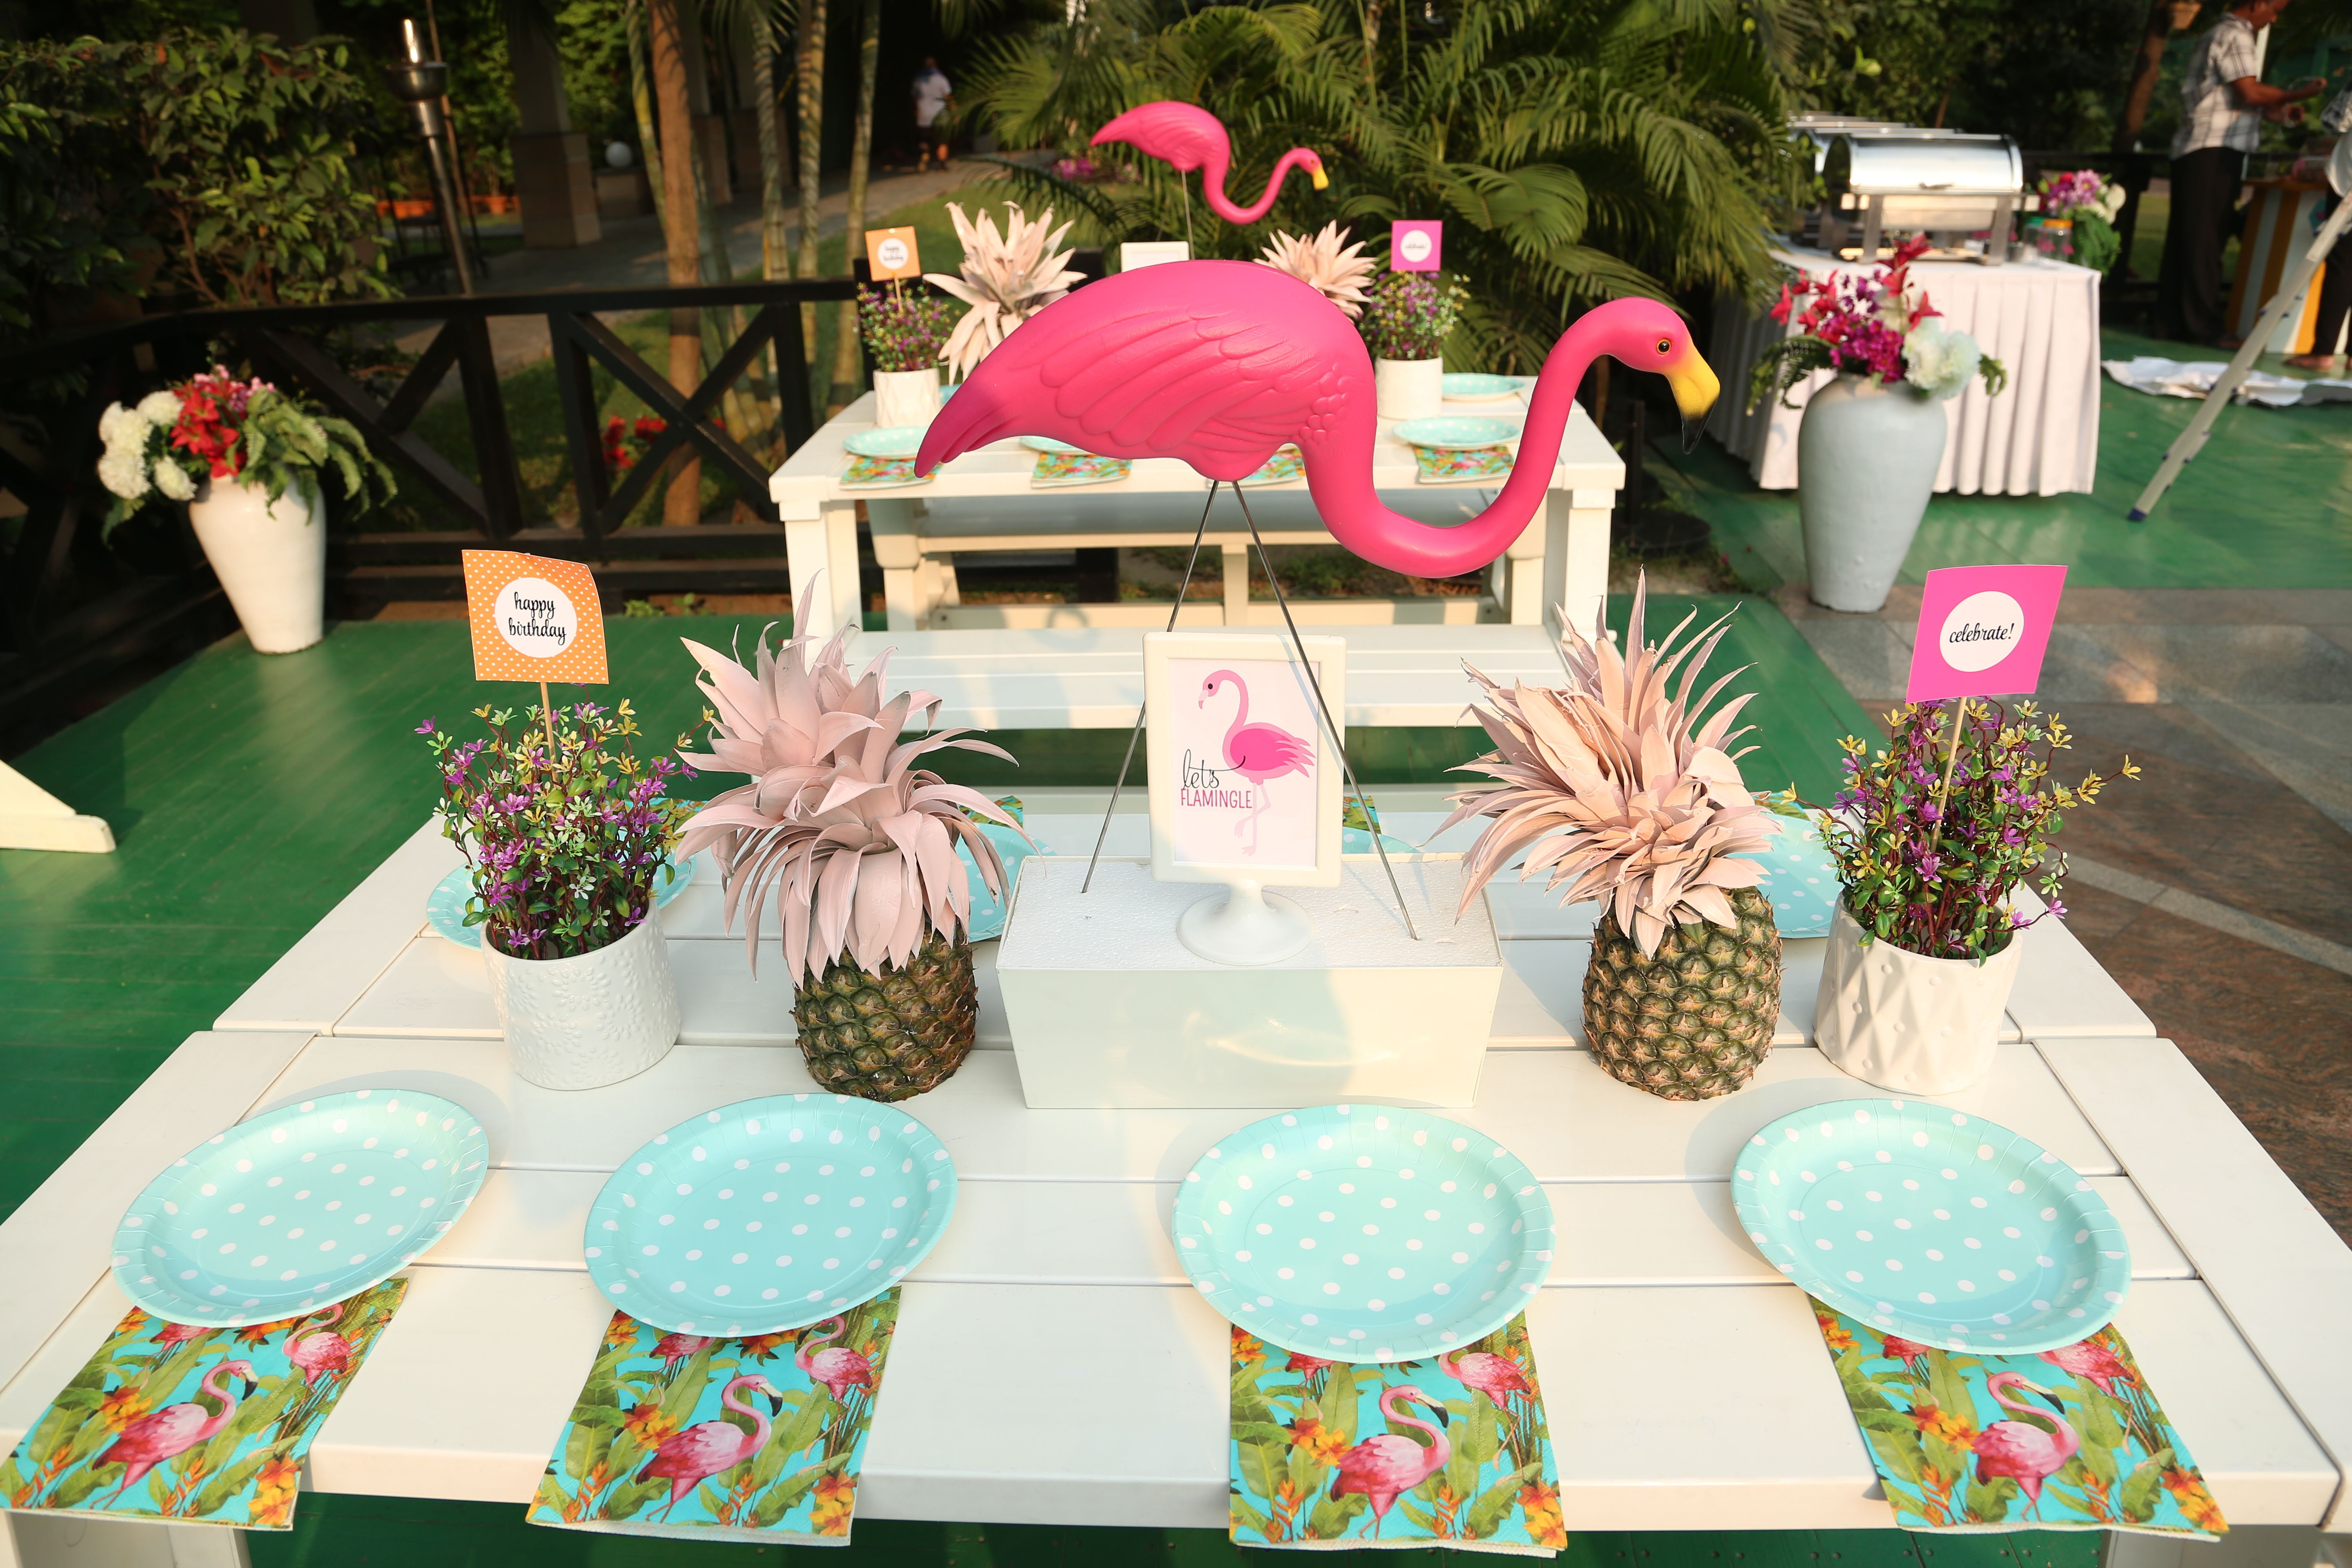 Tropical Flamingo birthday party table setup Birthday party